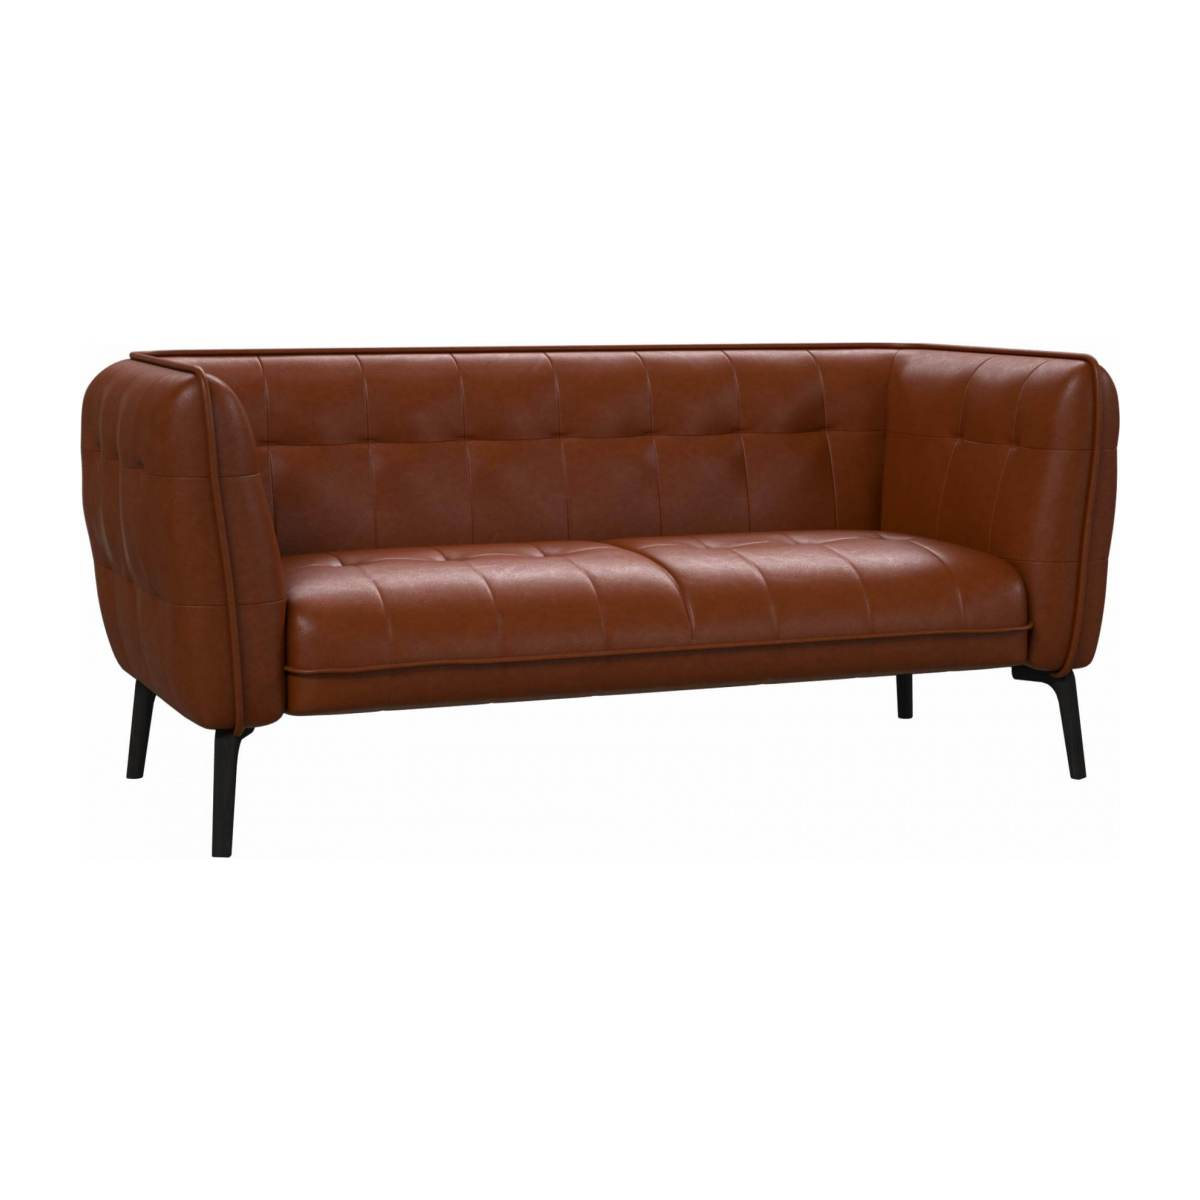 2 seater sofa in Vintage aniline leather, old chestnut and dark feet n°2